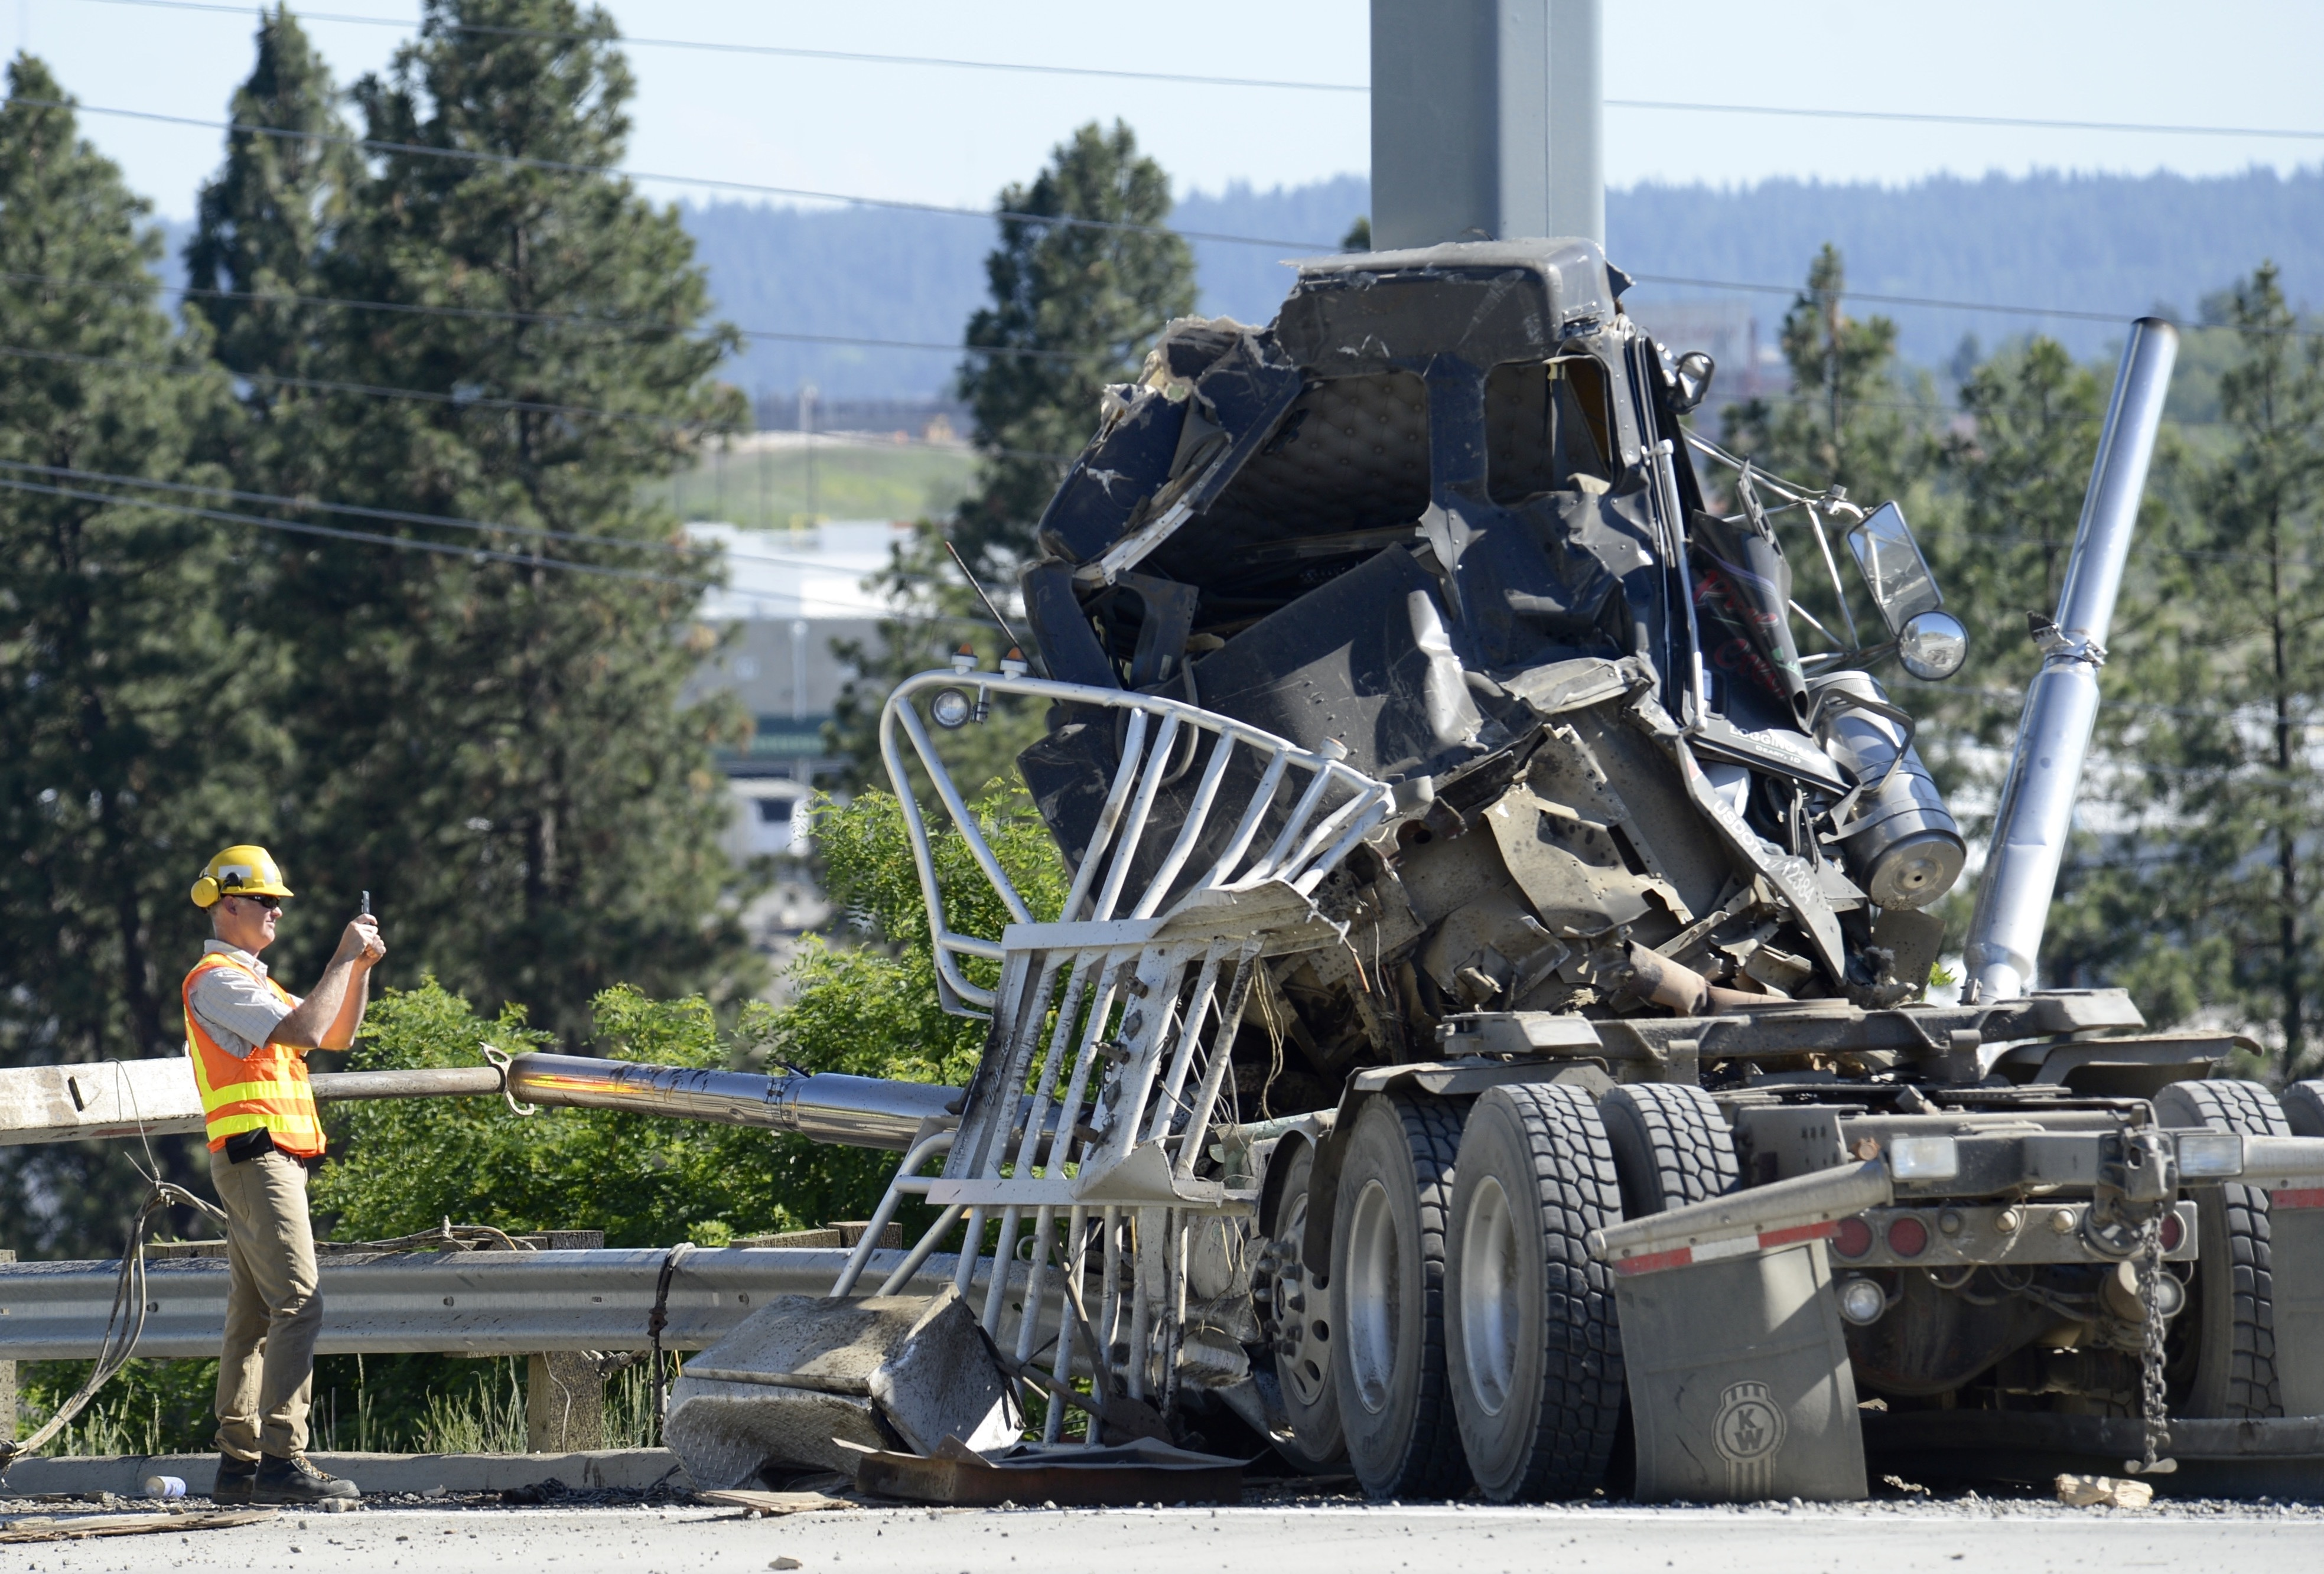 Logging truck crashes on U.S. Highway 395 | The Spokesman ...